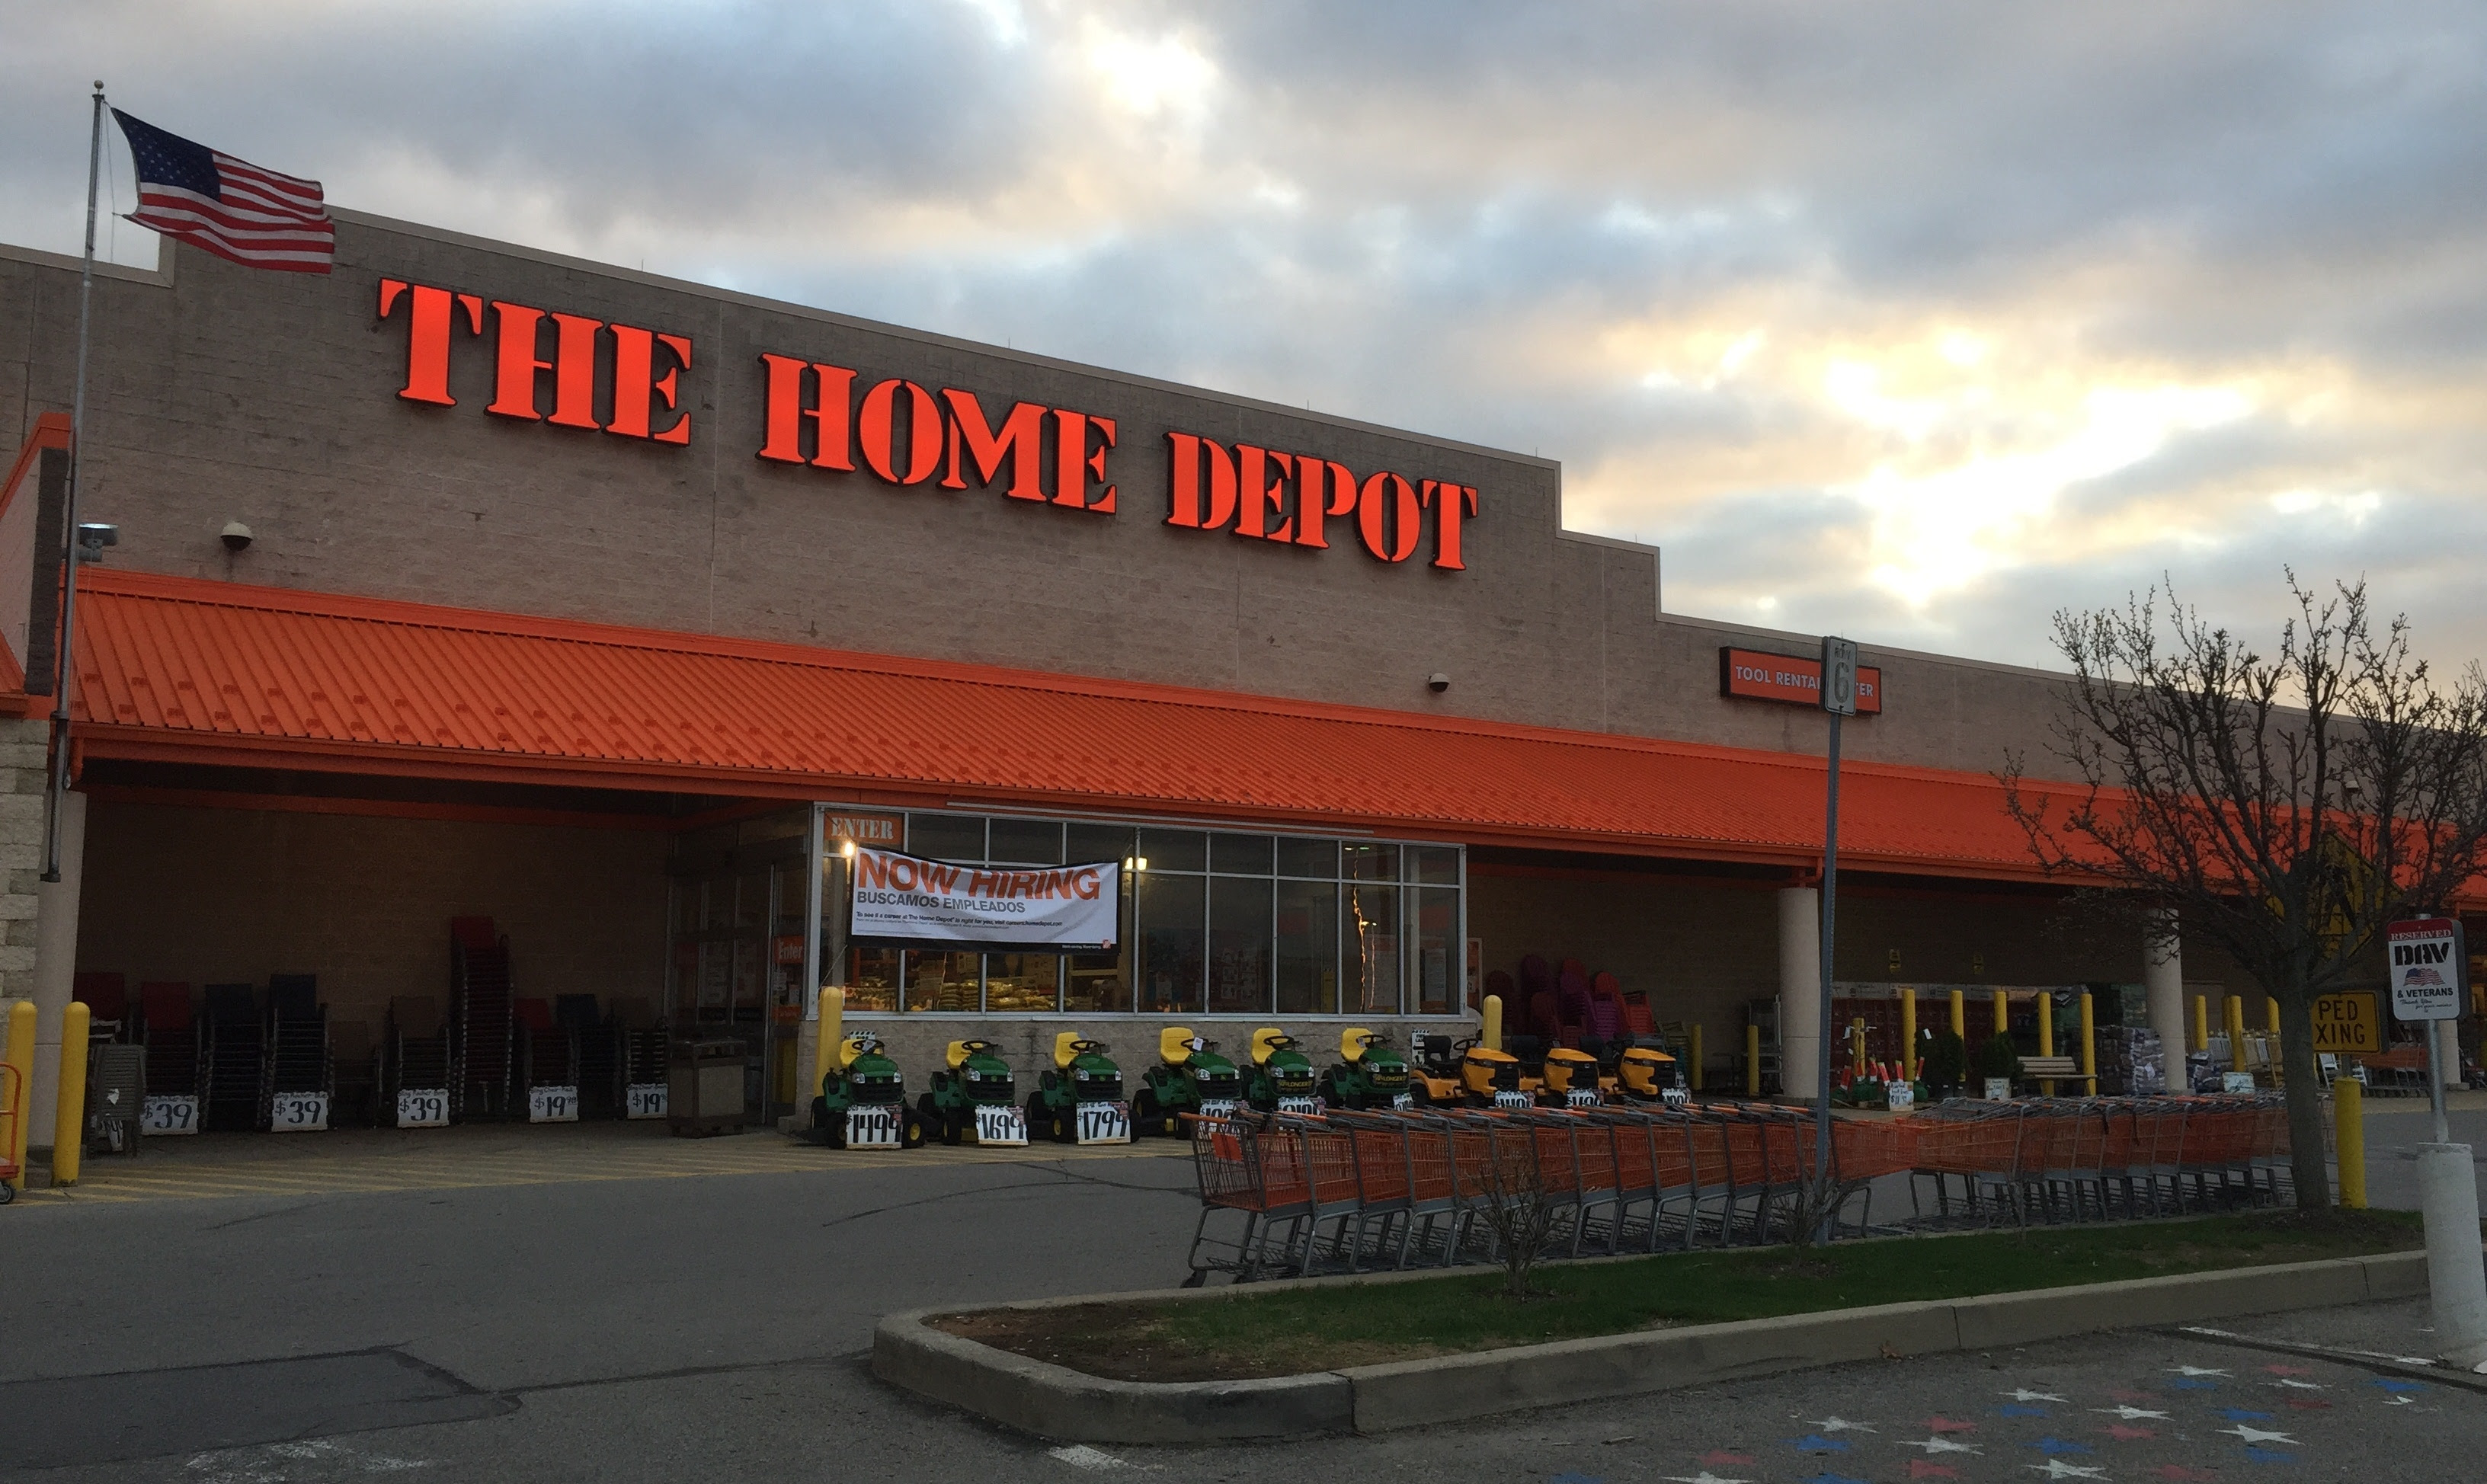 The Home Depot 440 Home Dr Pittsburgh PA Home Depot MapQuest